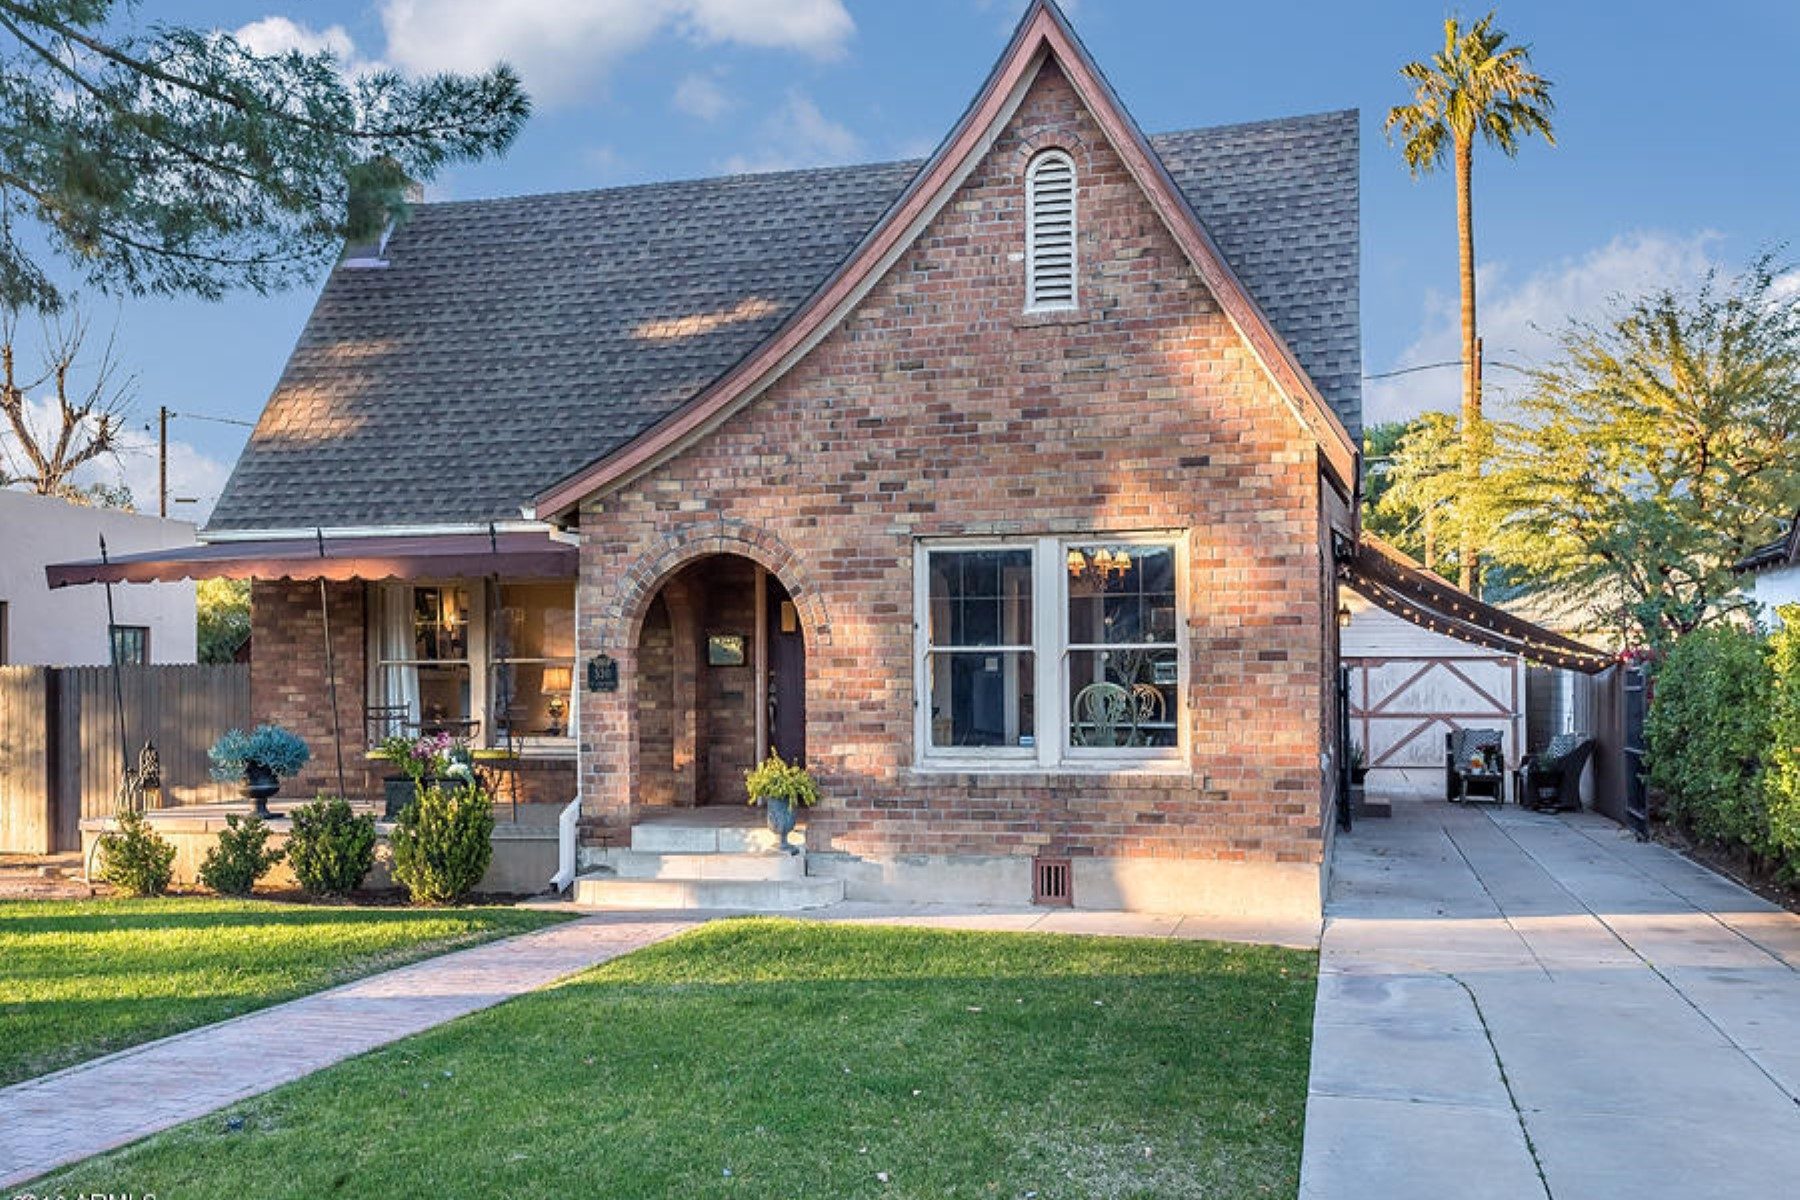 獨棟家庭住宅 為 出售 在 Charming 1930's Historic Willo Tudor home 530 W Coronado Rd Phoenix, 亞利桑那州, 85003 美國